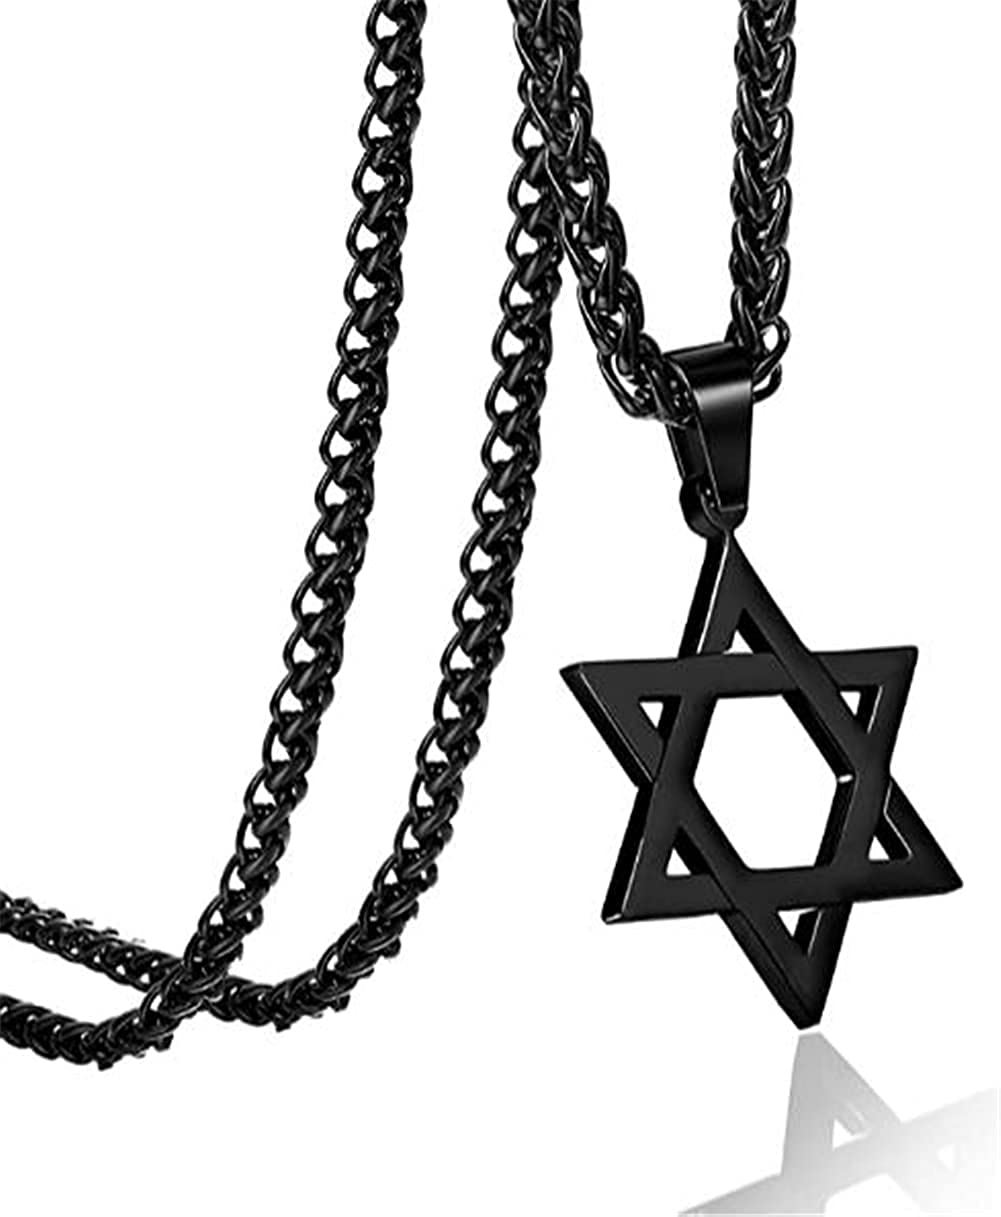 JTTBIGV Star of David Pendant Necklace Stainless Steel Jewish Jewelry for Men Women Religious with 22